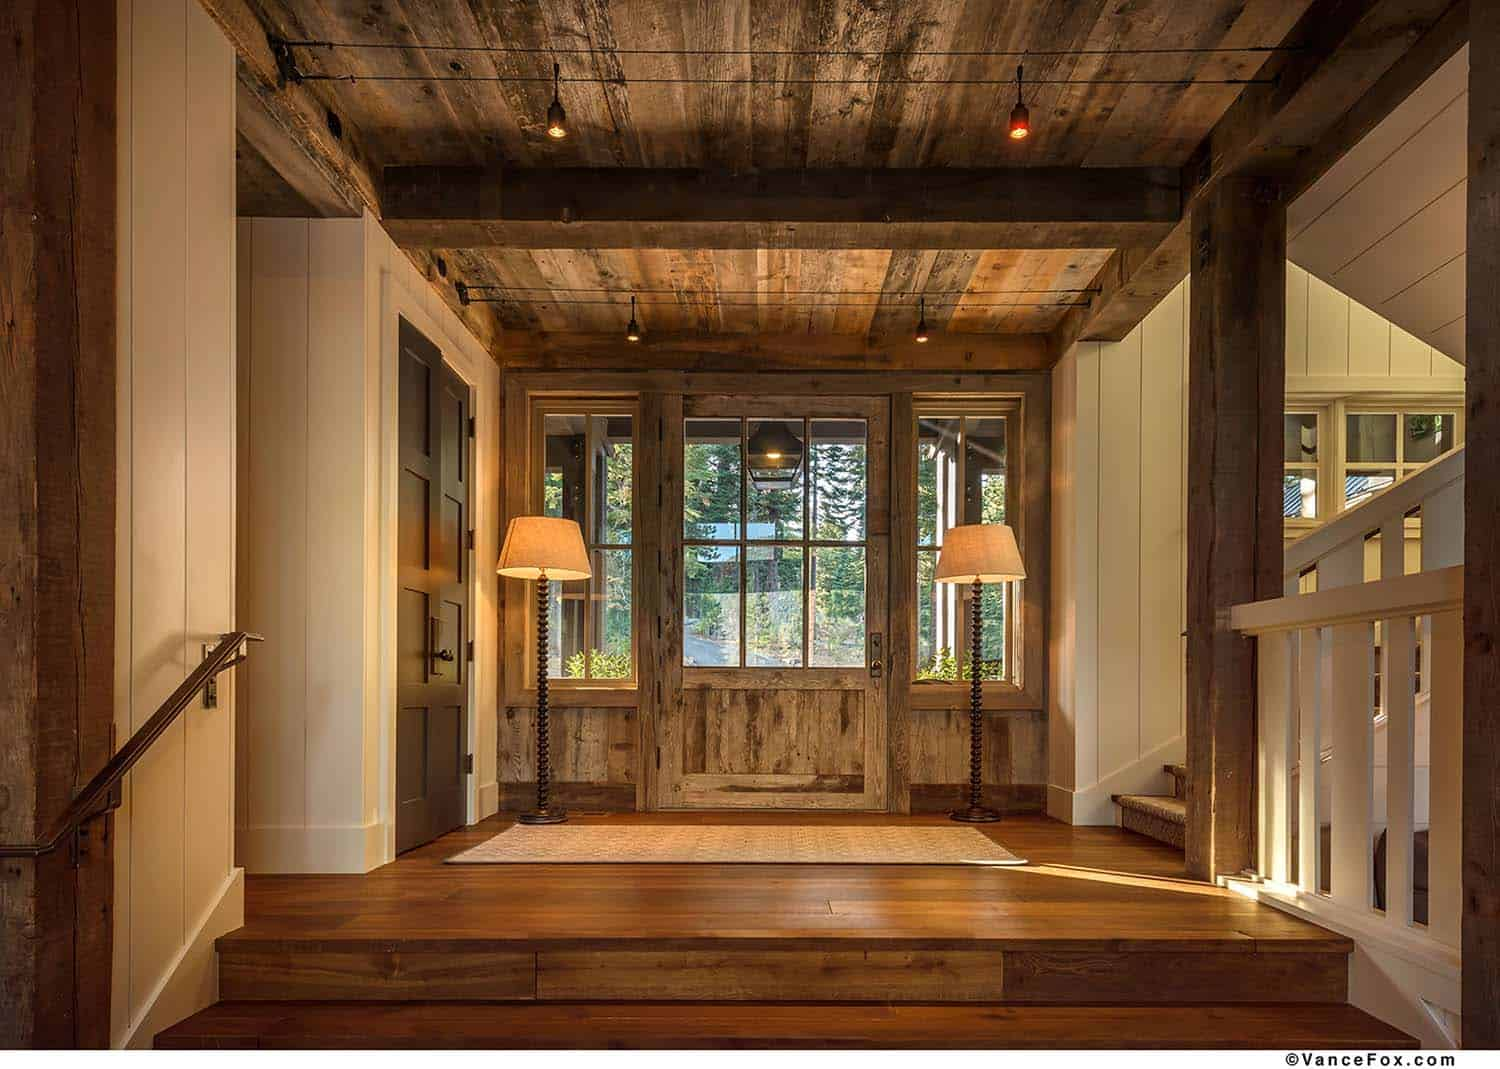 d03b7f04621 What We Love: There are a lot of beautiful details to admire in this warm  and cozy mountain style farmhouse. Enormous windows helps to highlight the  ...